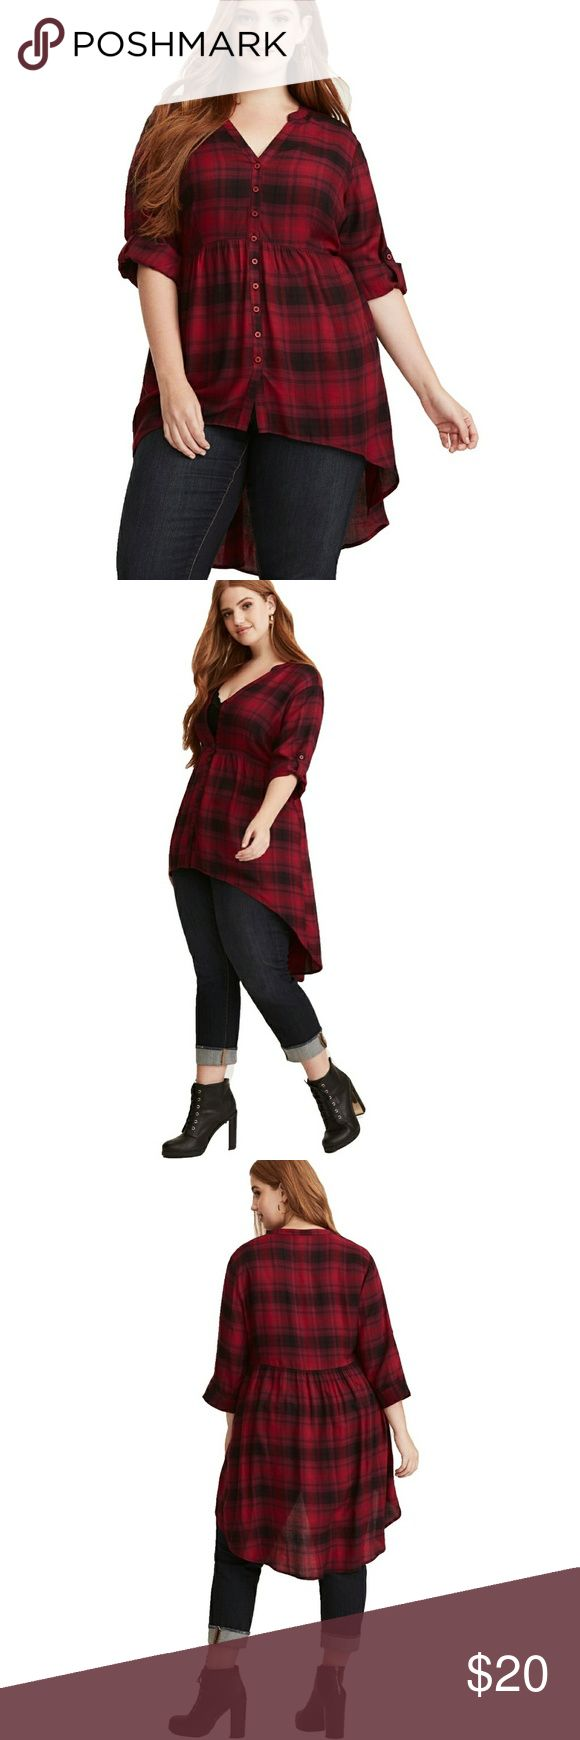 Torrid Plaid Hi-Lo Button Front Tunic It's a top? It's a dress? Nope, it's the perfect in-between and it's your new favorite tunic. The lightweight red and black plaid fabric has repeat quality. The hi-lo hem totally flows on its own, while a button front and tab sleeves polish up the look.  Great used condition! Torrid size 2. torrid Tops Tunics